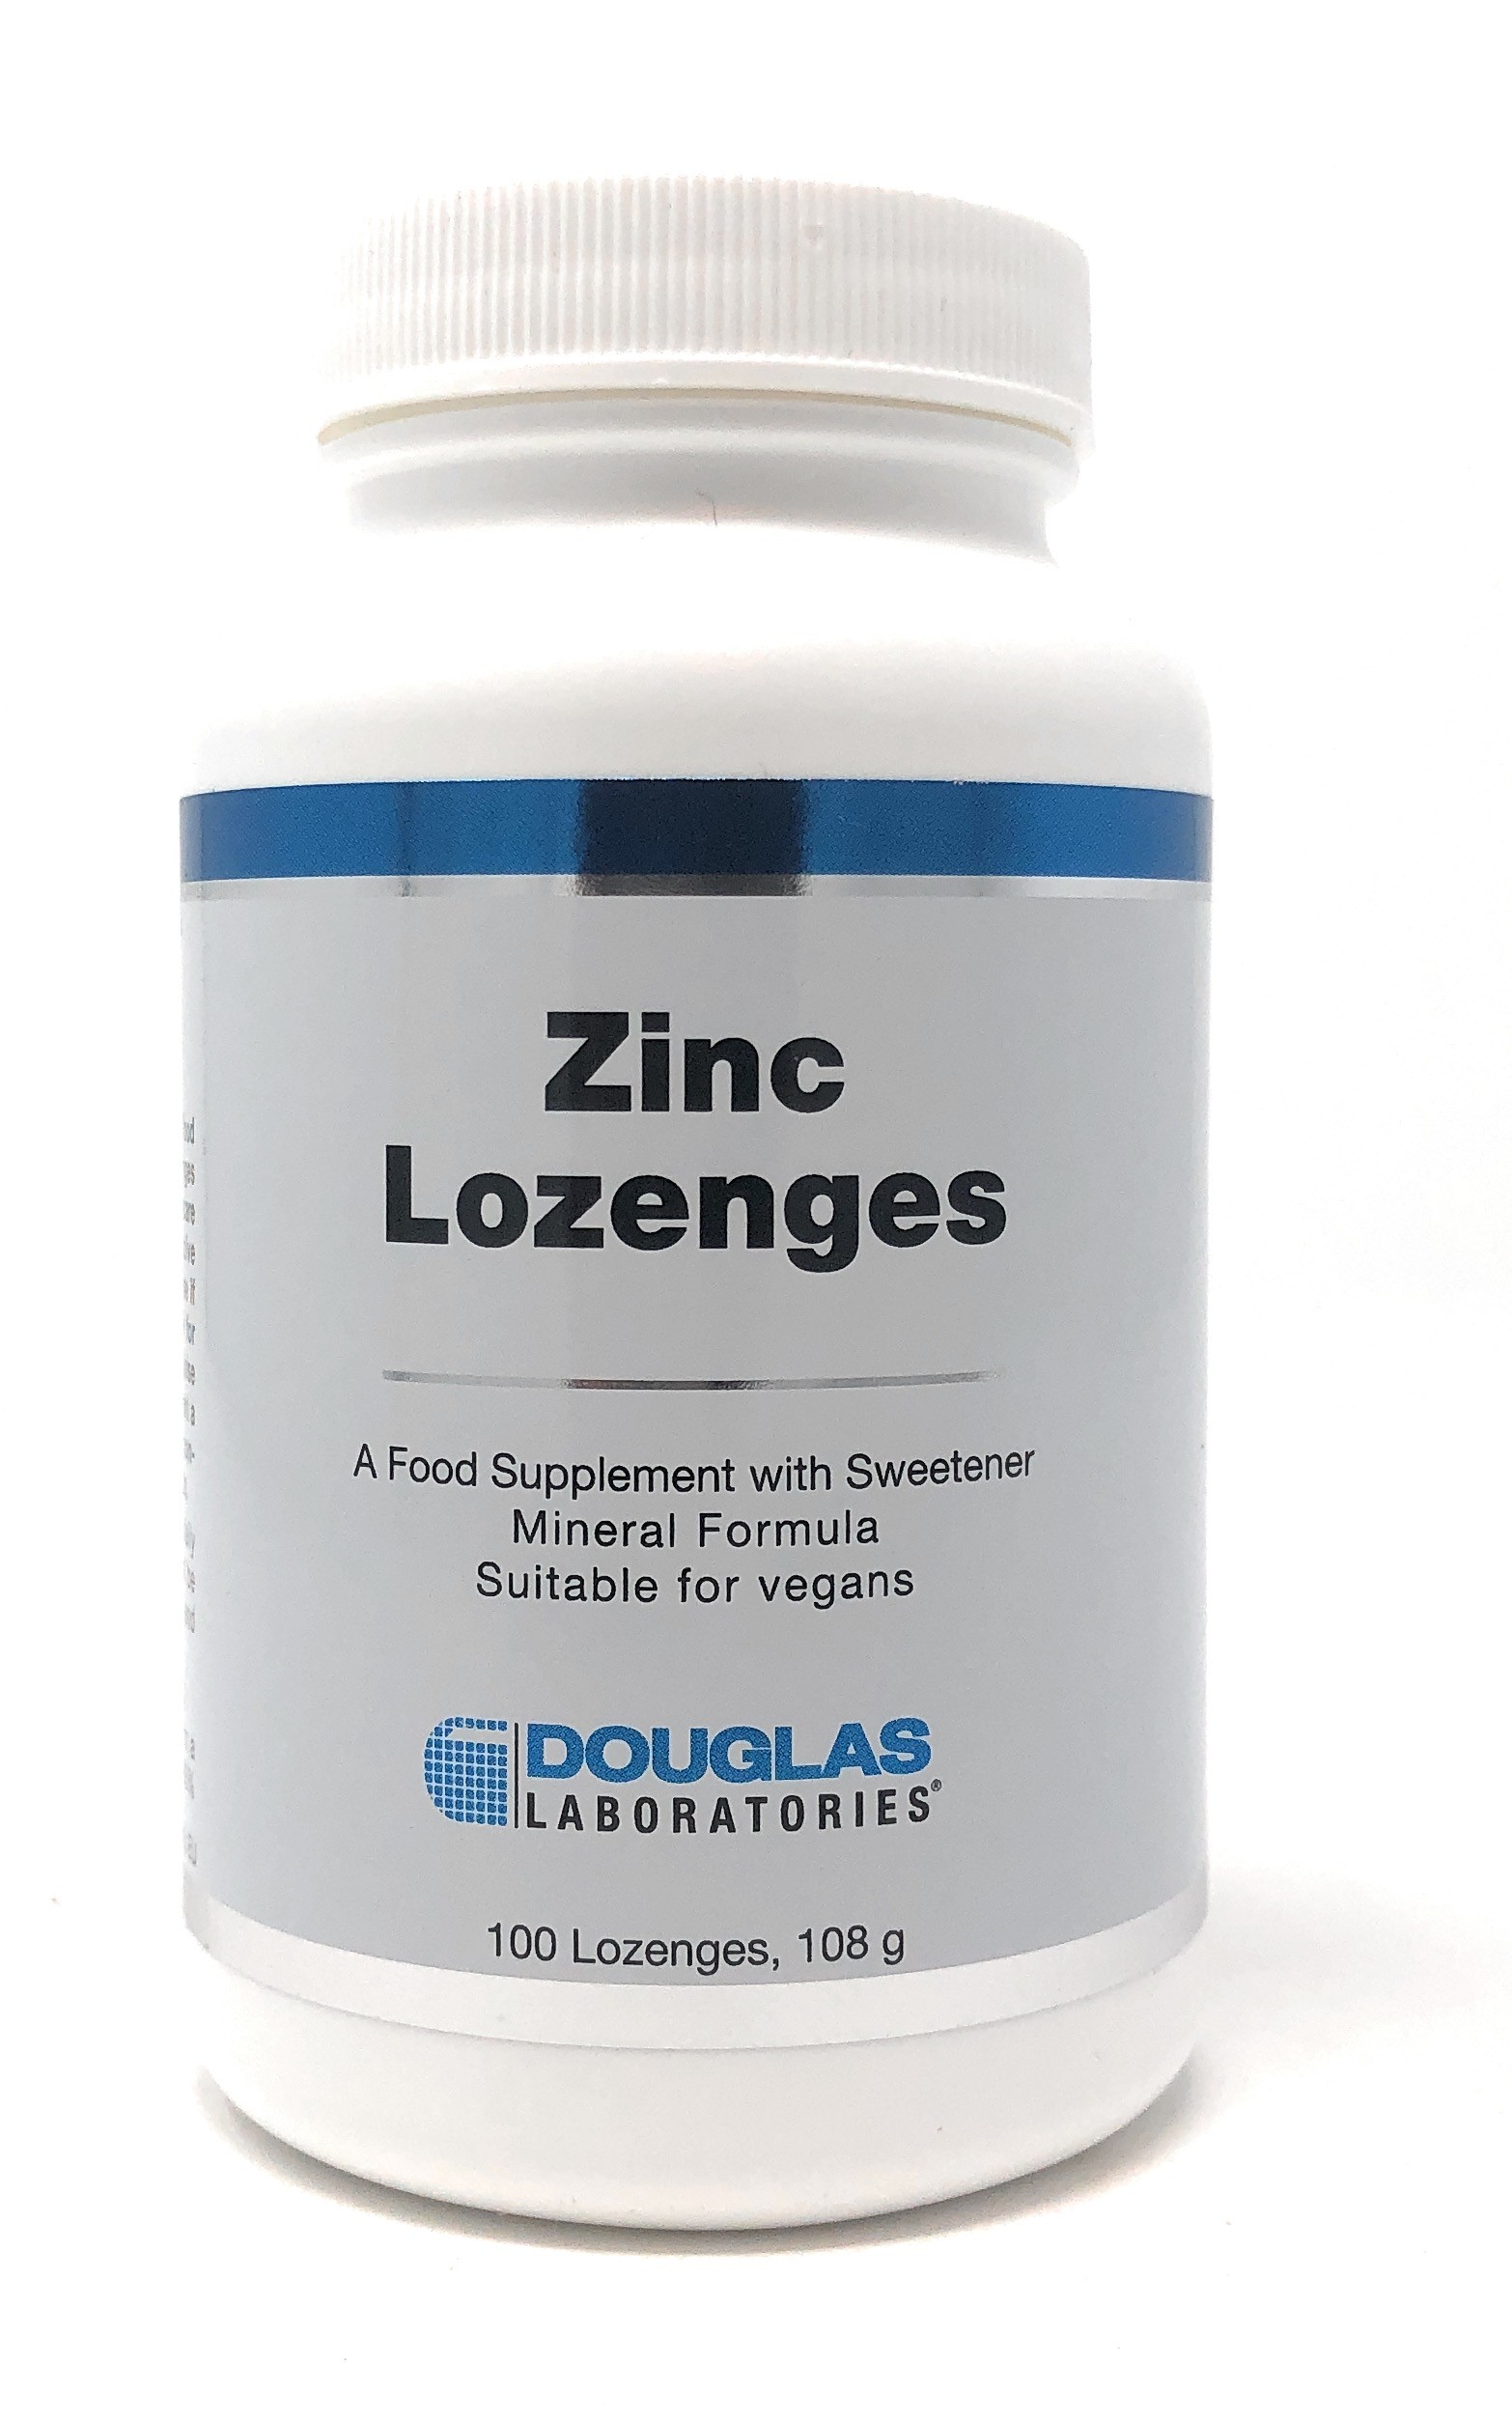 Douglas Laboratories Europe Zinc Lozenges 100 Lutschtabletten (108g)